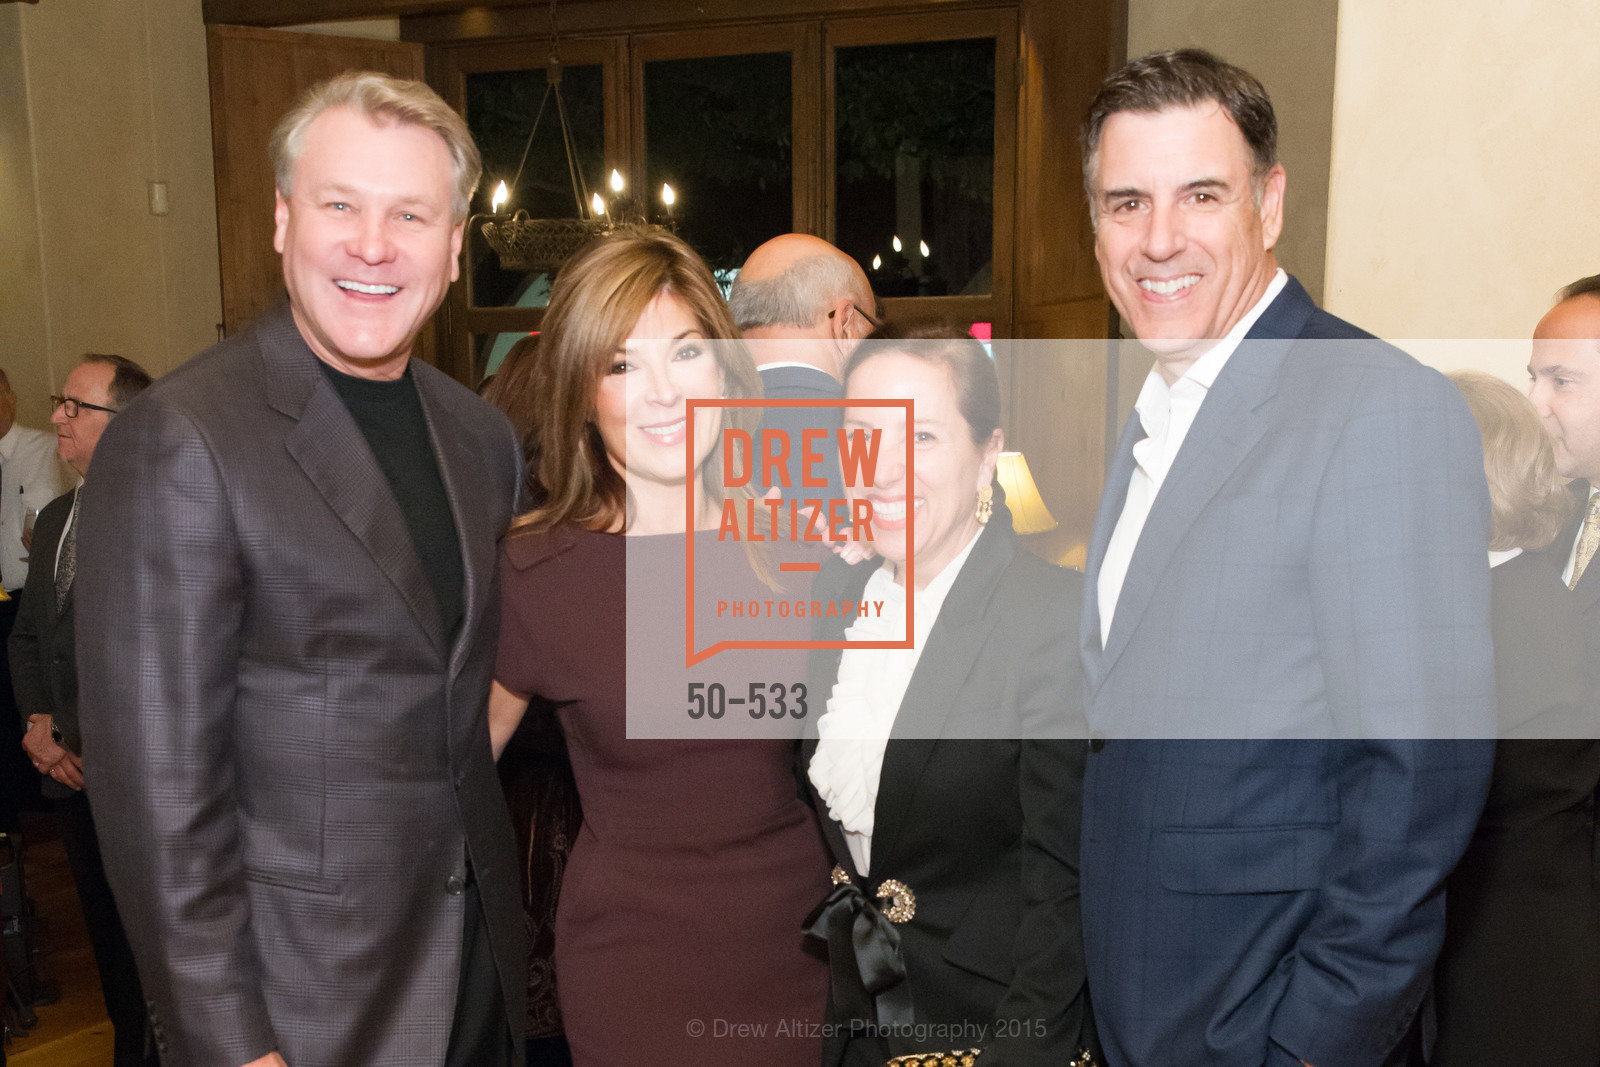 Randy Fry, Vicki Liviakis, Eleni Kounalakis, Markos Kounalakis, Hellenic Charity Ball Cocktail Reception, Kokkari. 200 Jackson St, San Francisco, CA 94111, November 13th, 2015,Drew Altizer, Drew Altizer Photography, full-service agency, private events, San Francisco photographer, photographer california